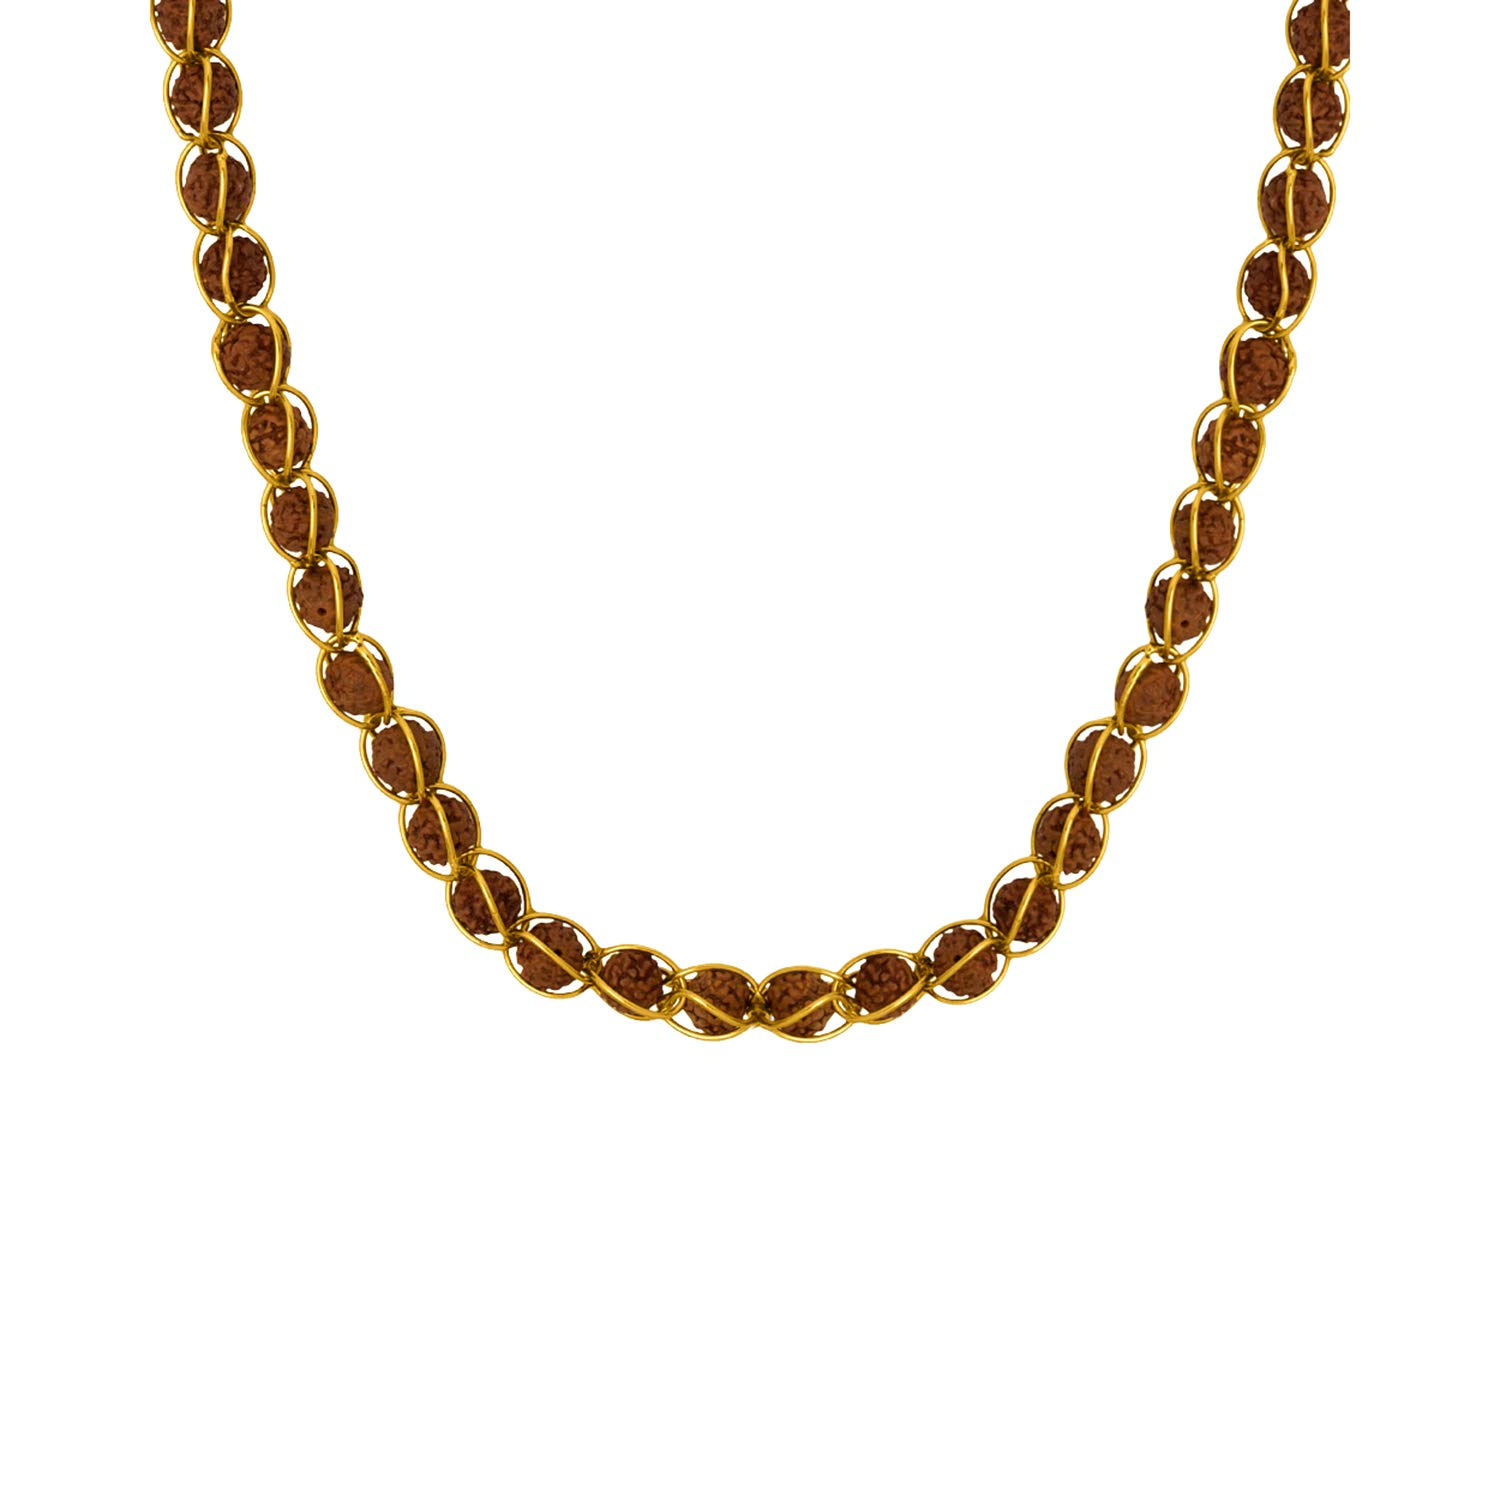 e3f9ab5def703 Dare by Voylla Rudraksha Studded Chain in Gold Toned: Amazon.in ...